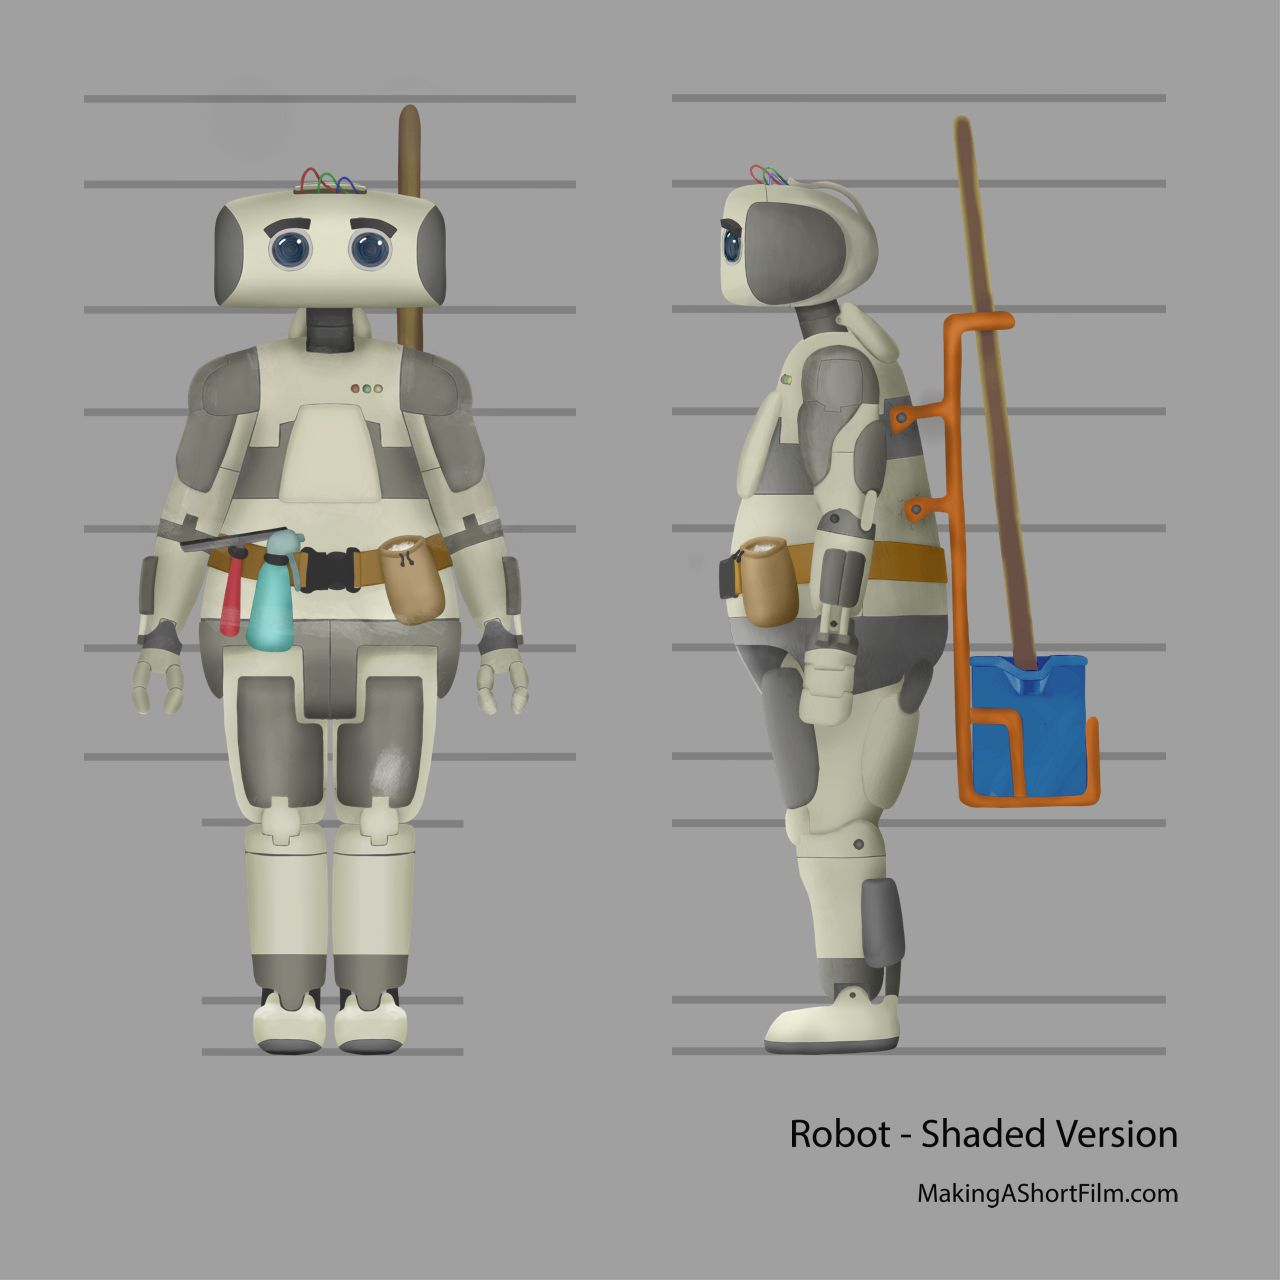 The completed Robot concept art